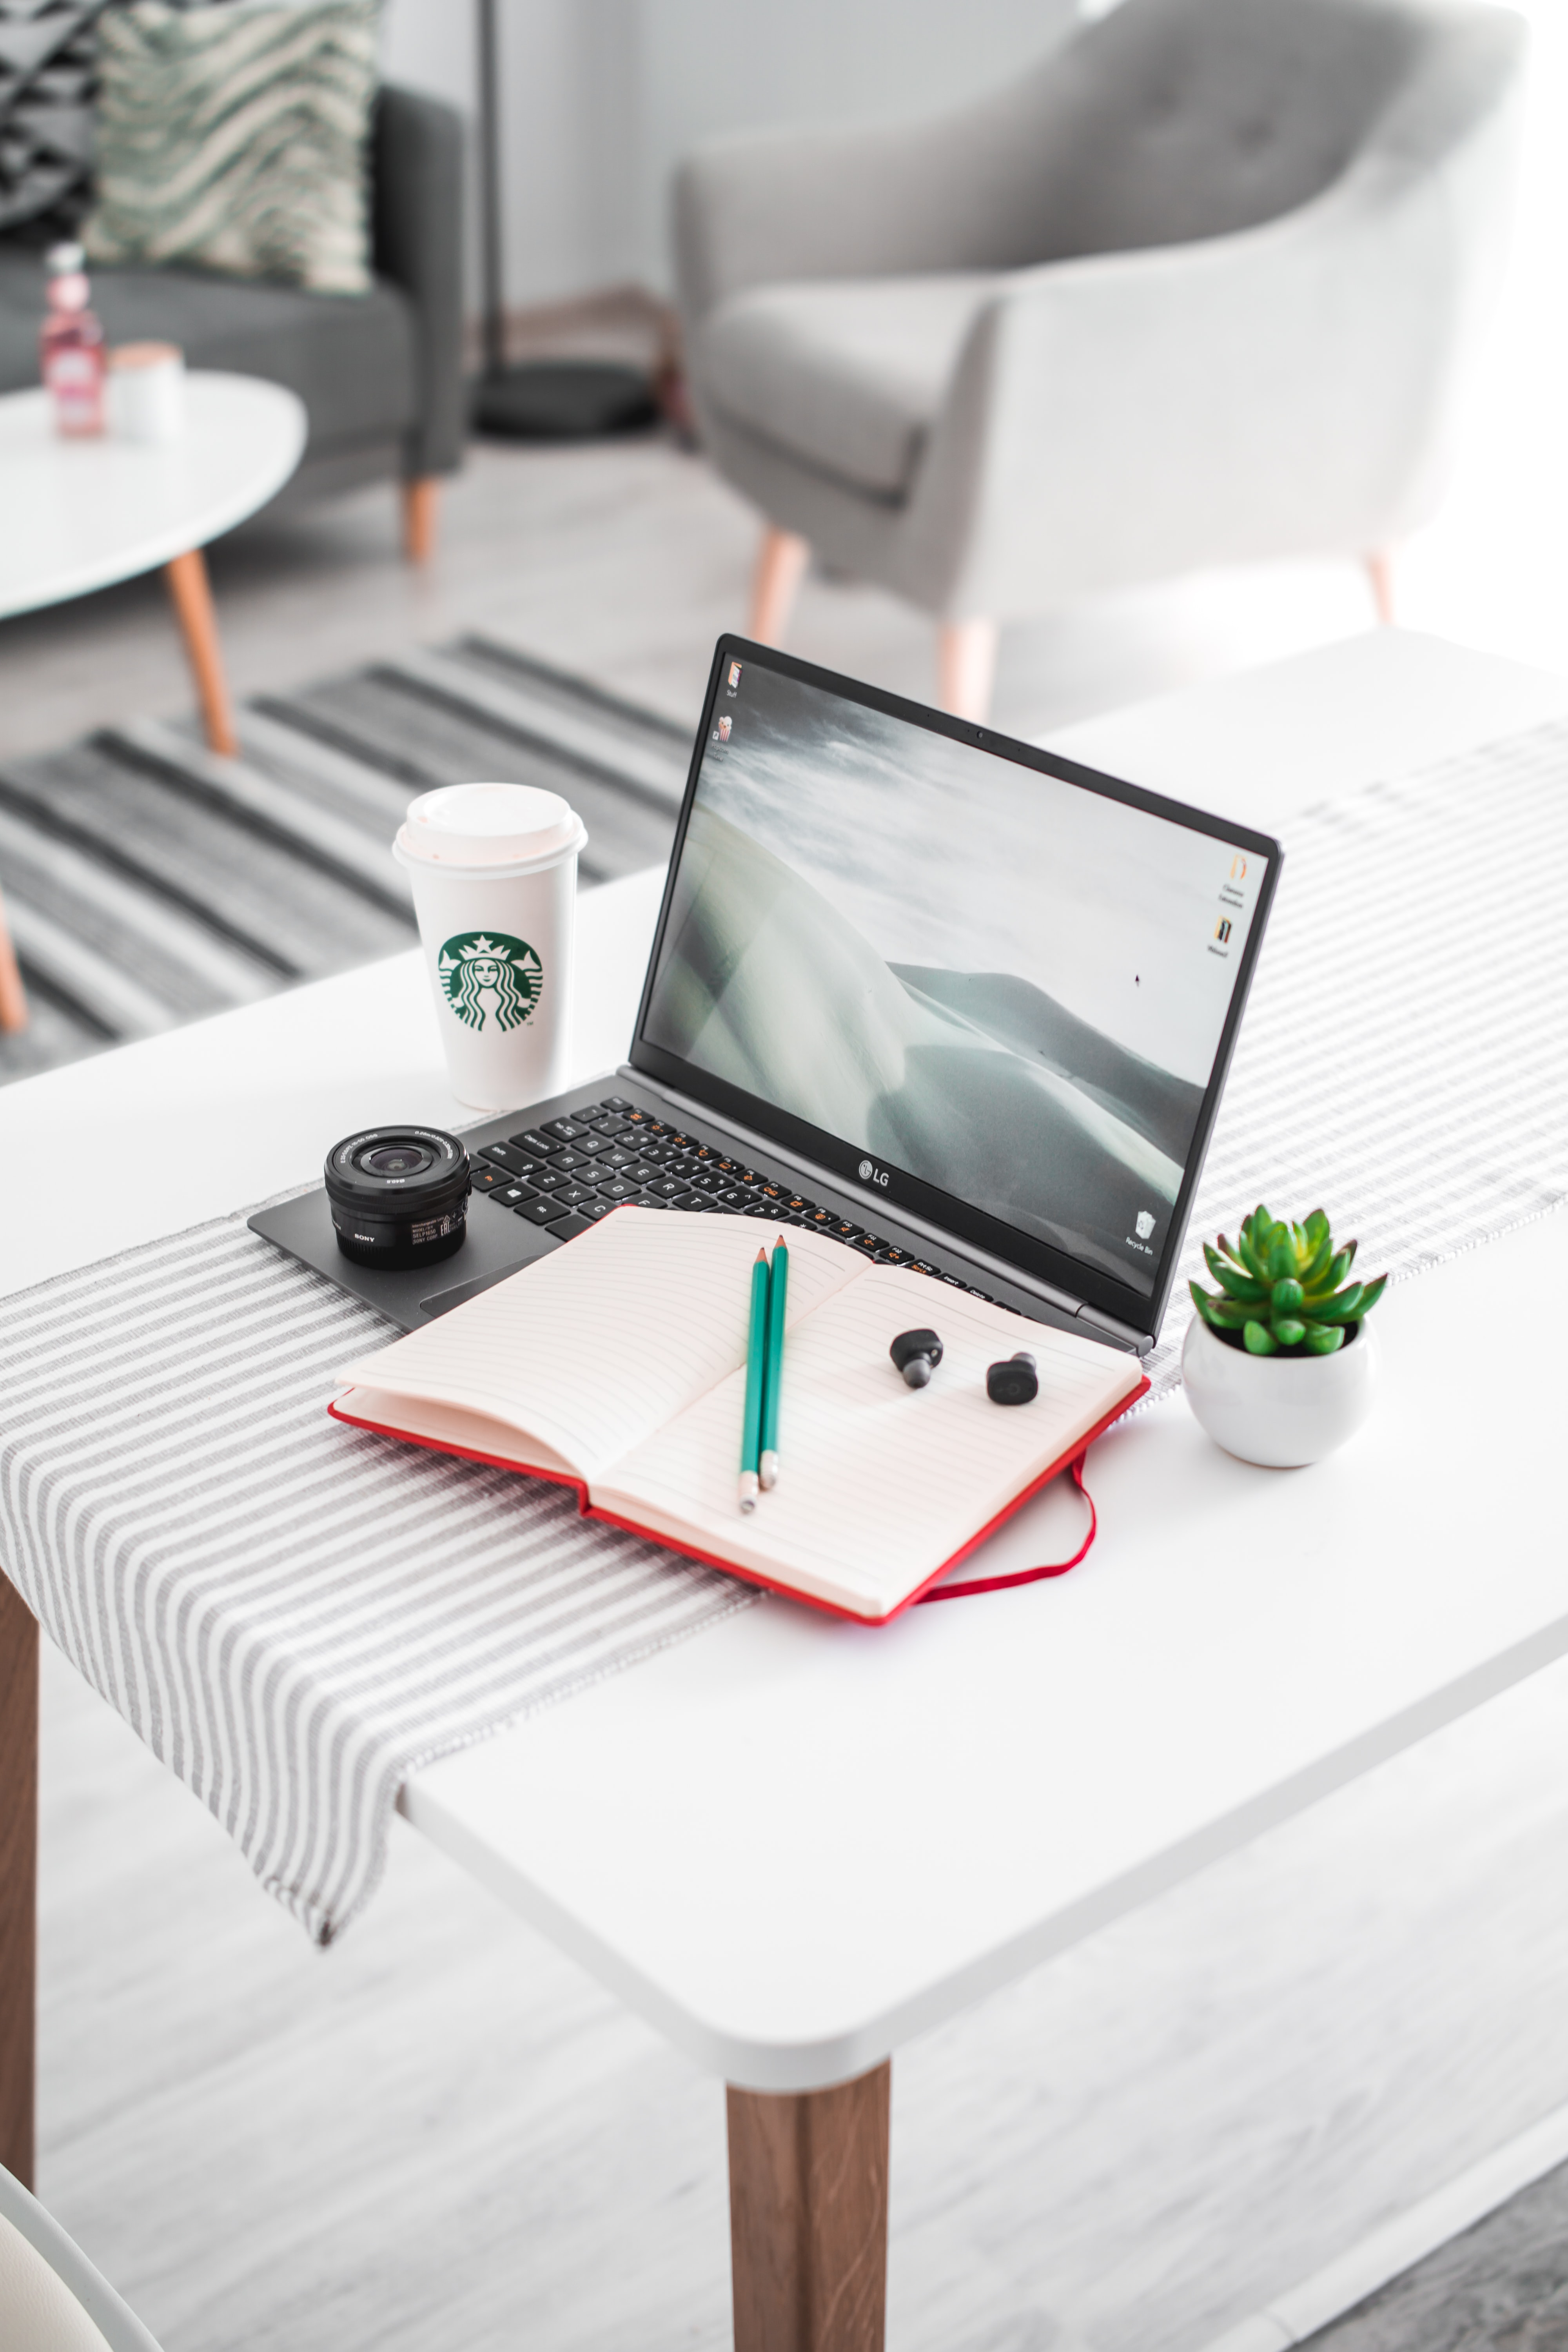 turned-on silver LG laptop on whit table